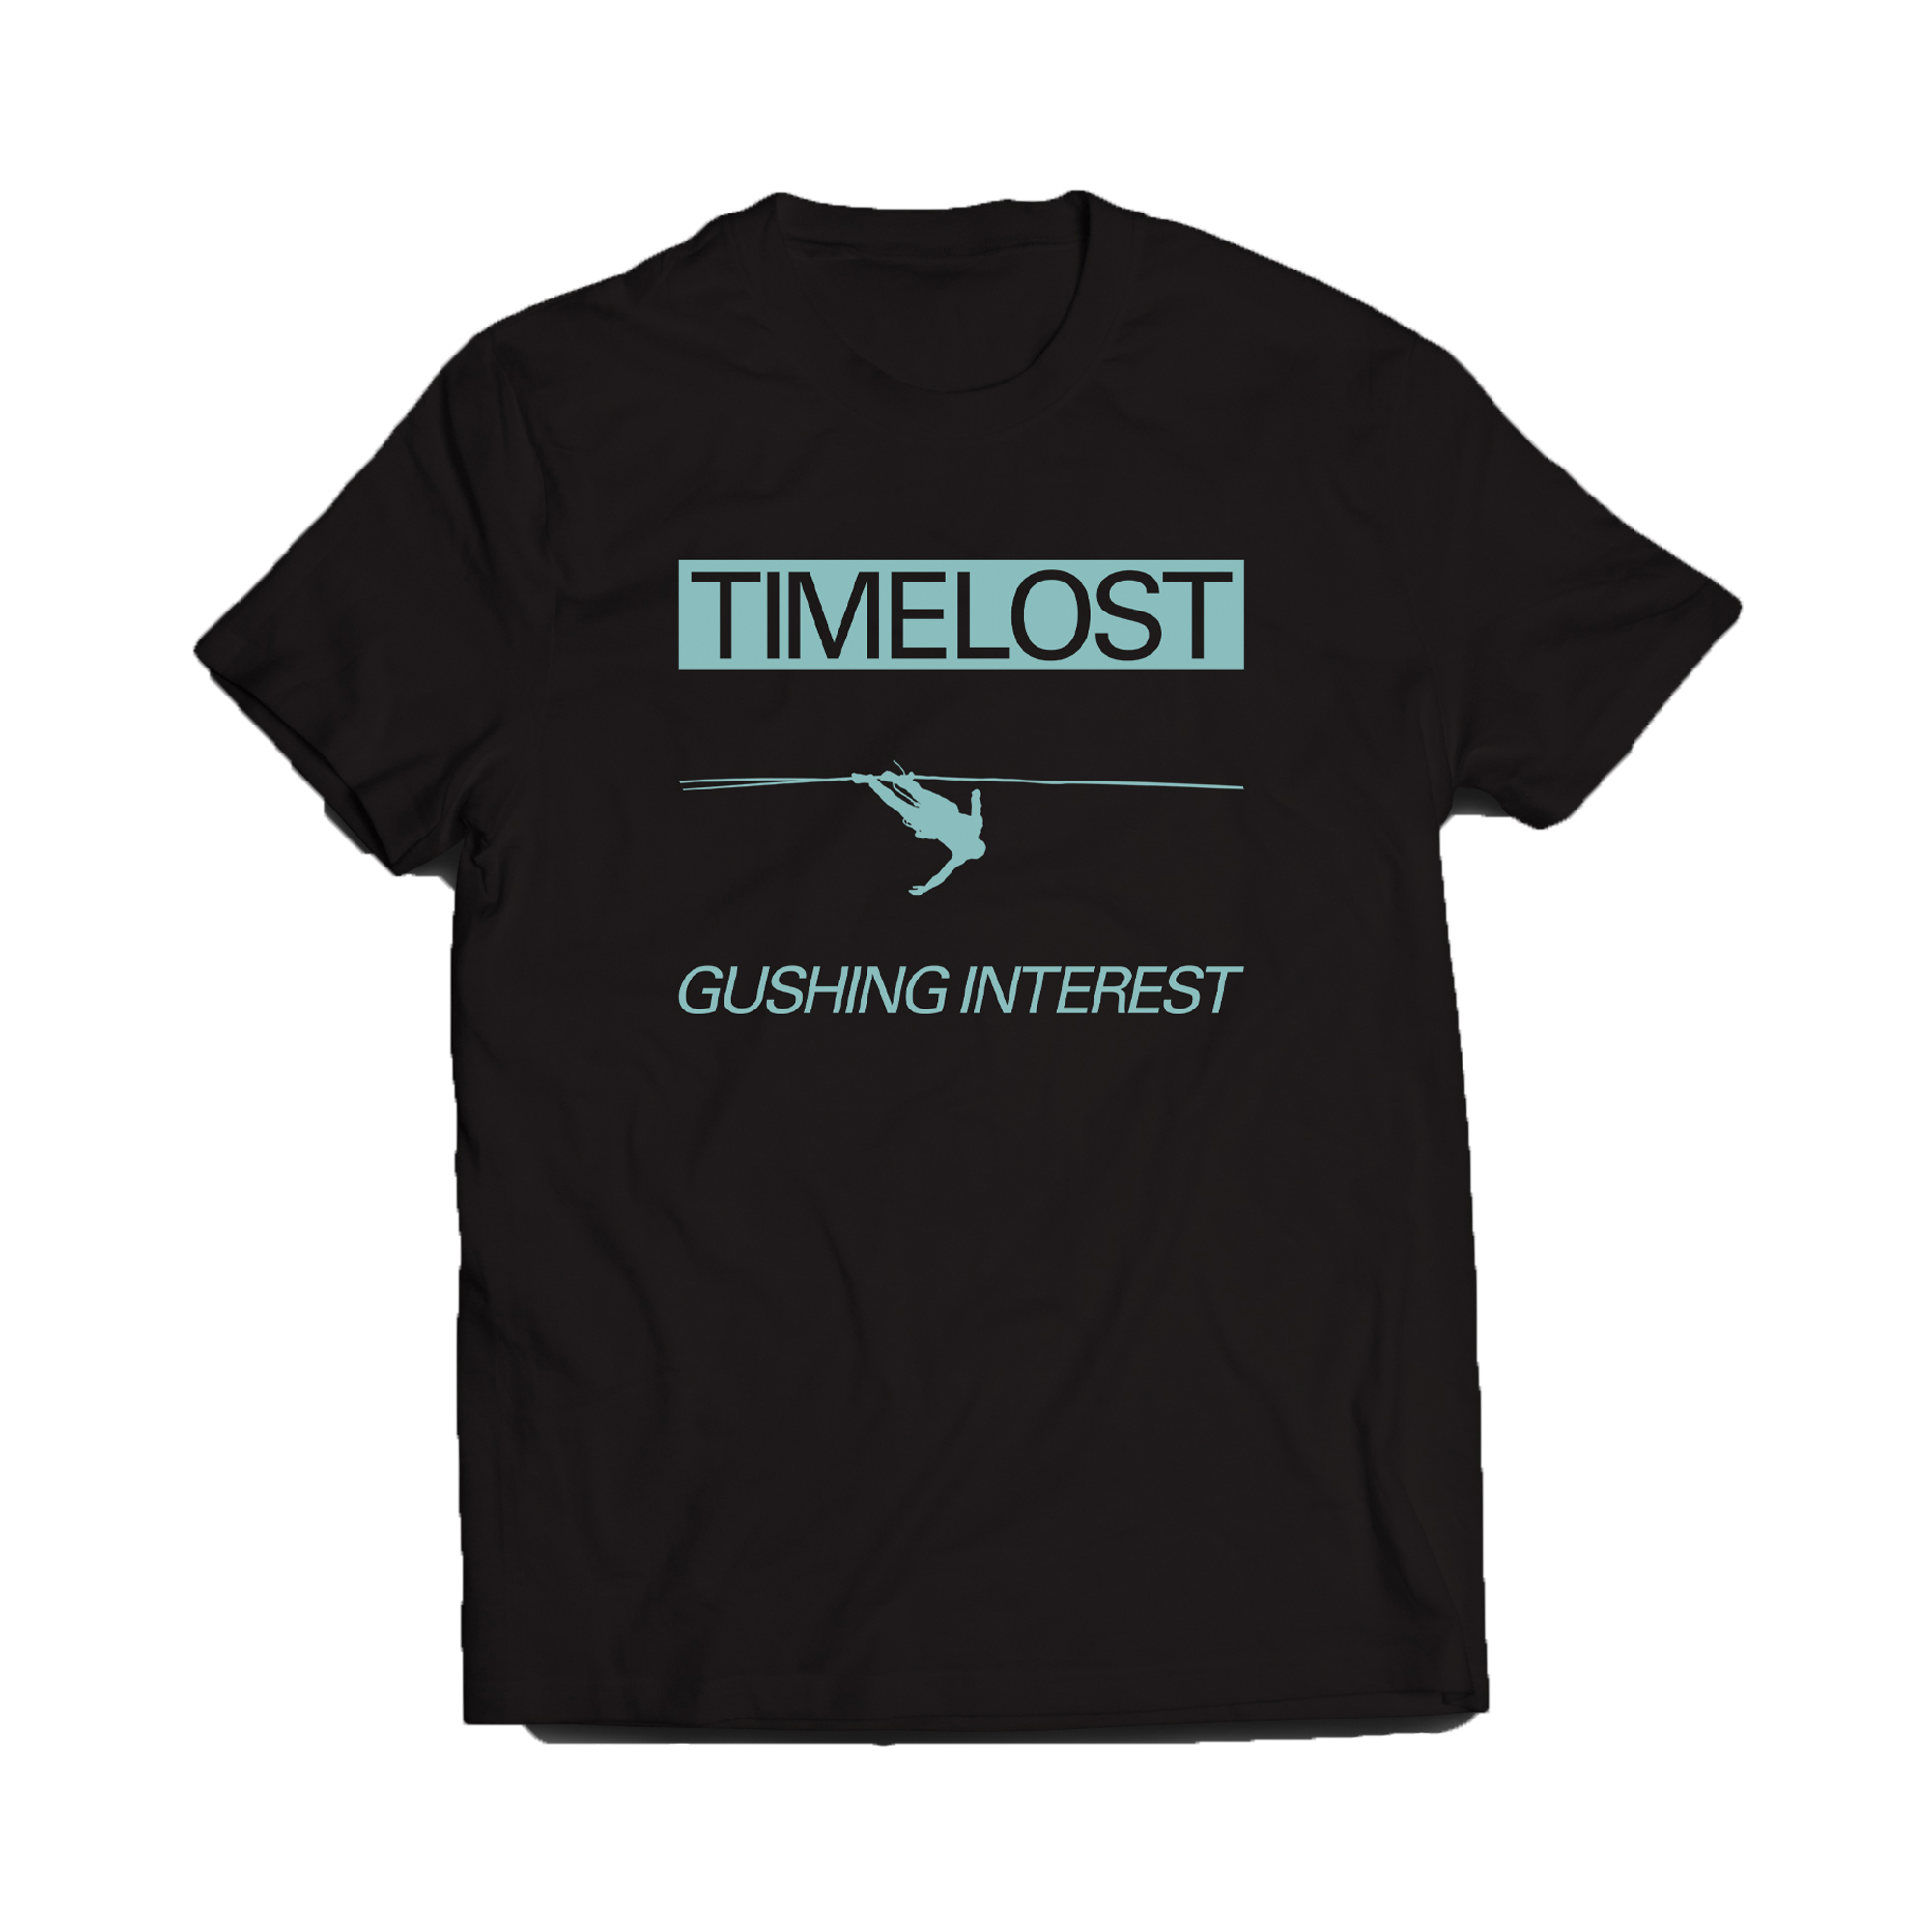 Timelost - Gushing Interest shirt